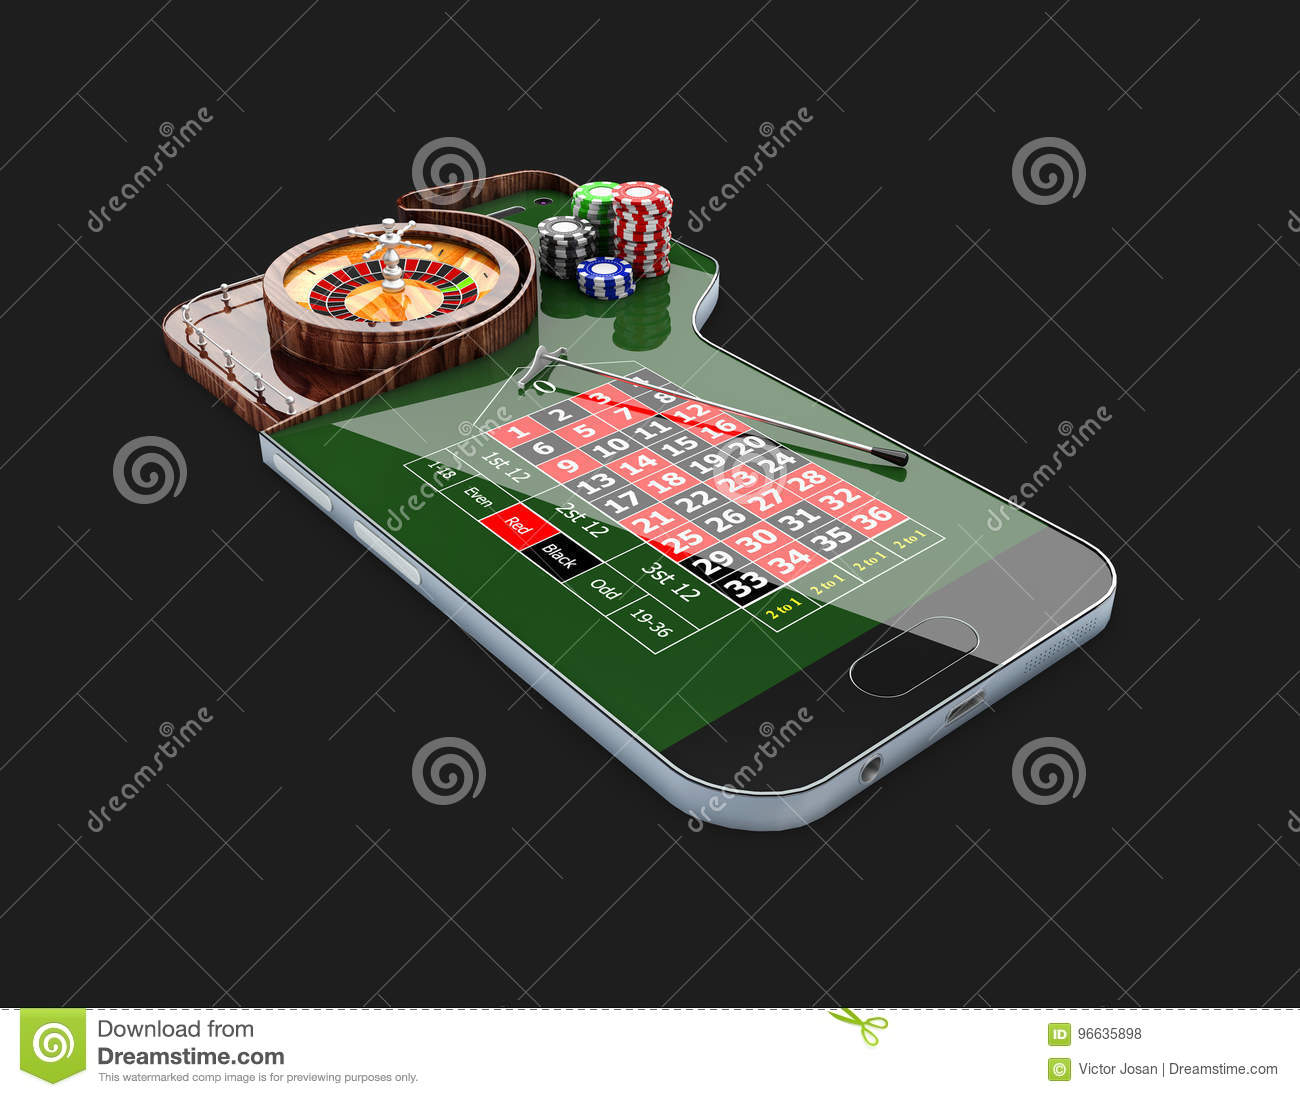 casino roulette wheel with casino chips, on phone screen, 3d illustration